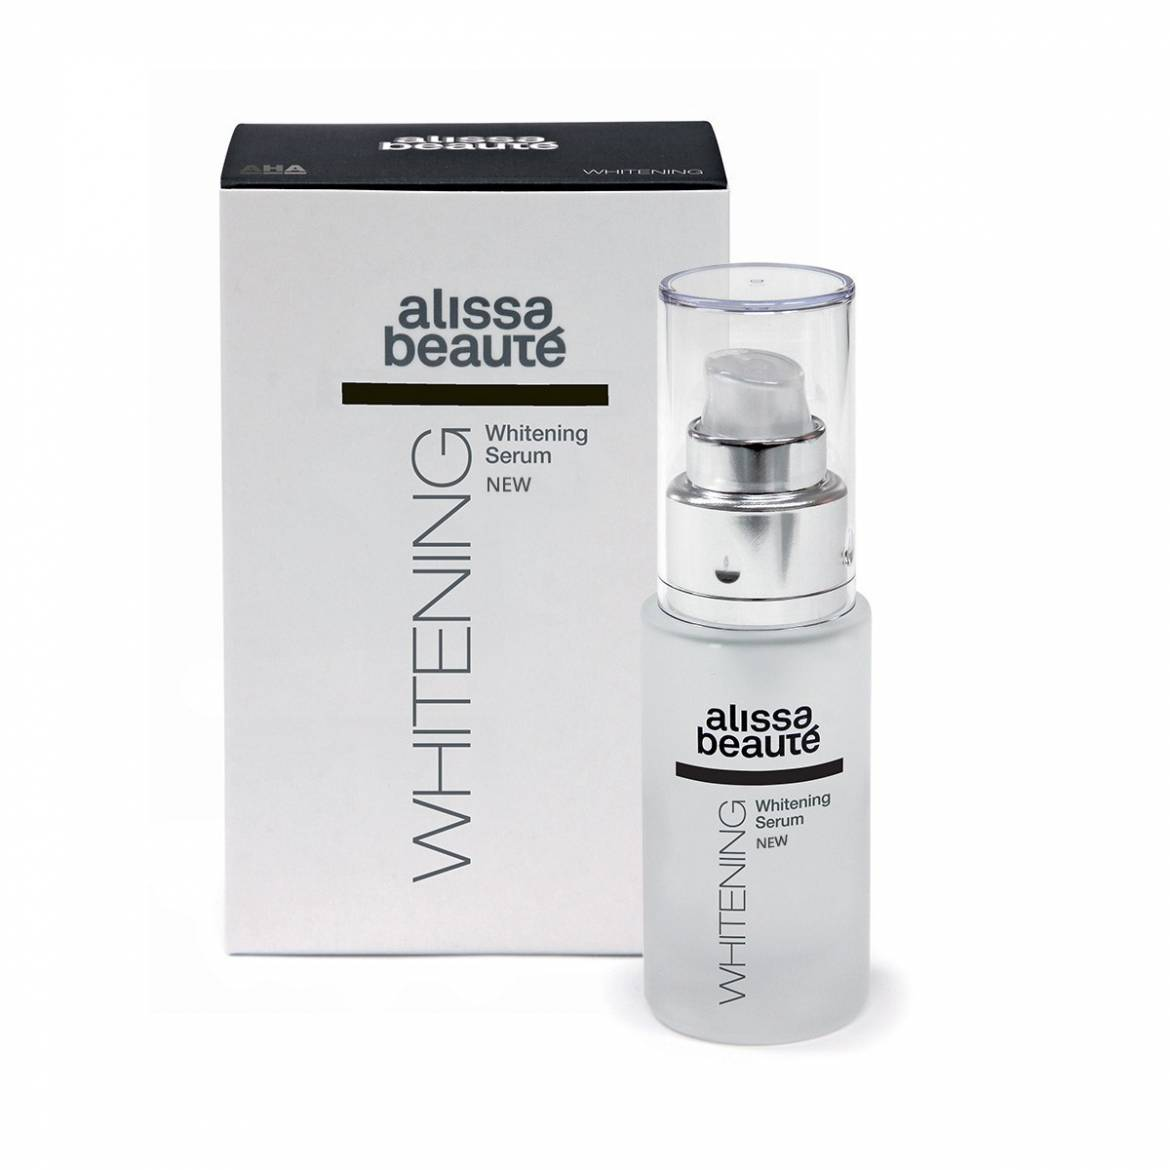 Whitening-Serum-flakon-NEW-2.jpg